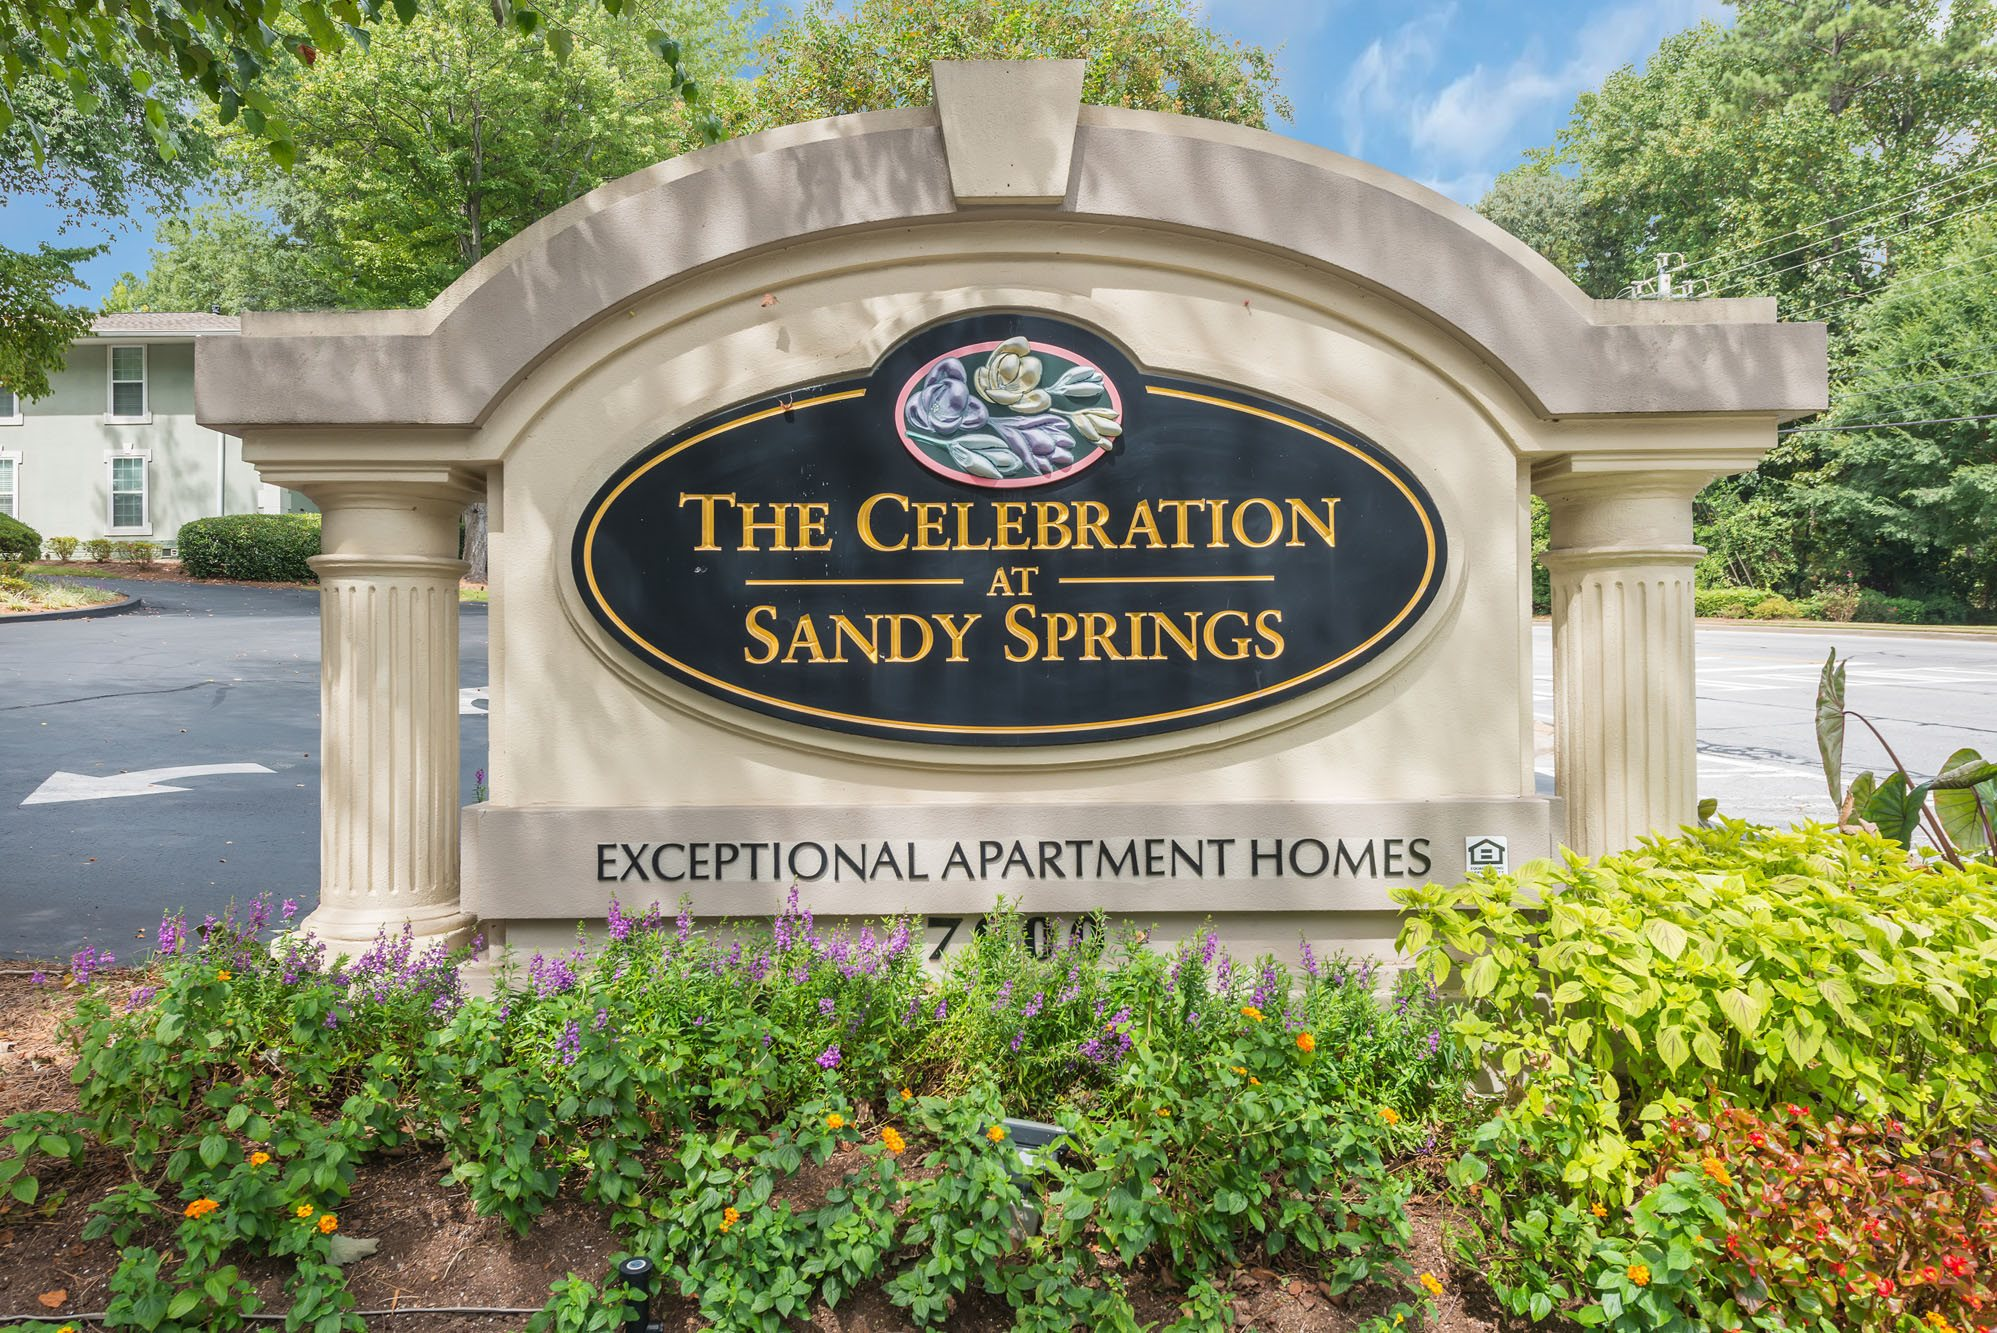 Photos and video of the celebration at sandy springs in sandy atlanta photogallery 1 mightylinksfo